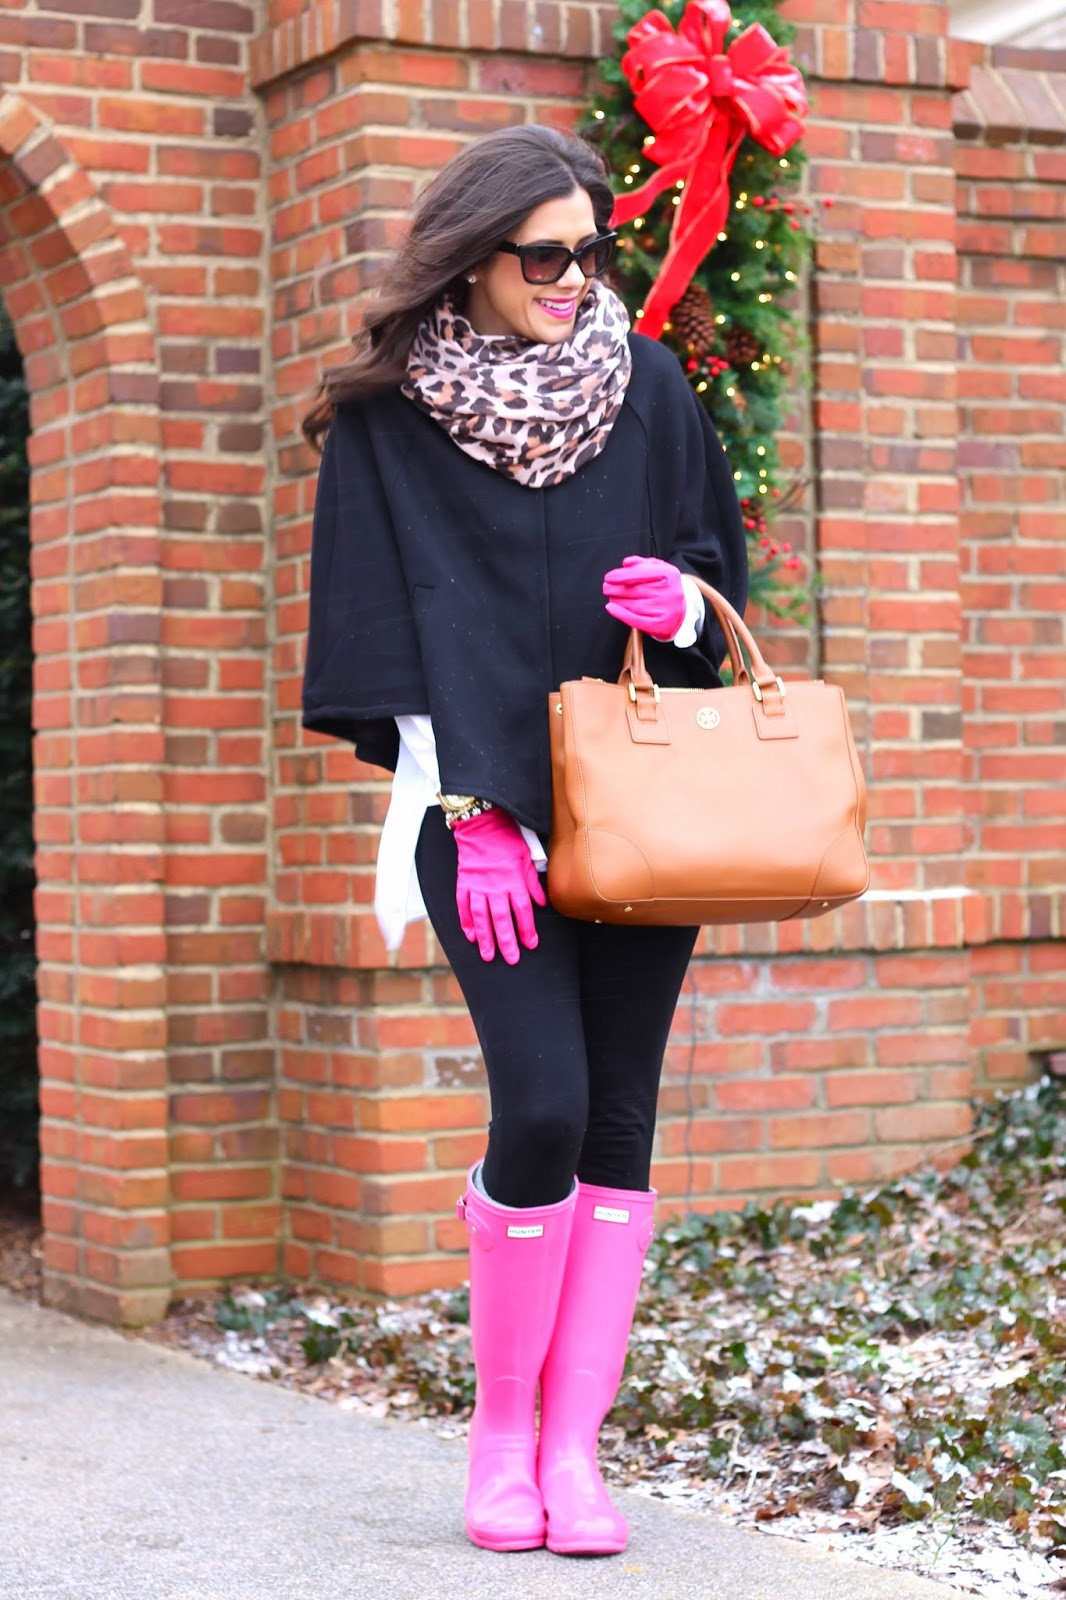 www.thesweetestthingblog.com, the sweetest thing blog, emily gemma, hot pink gloves, leather pink gloves, prada sunglasses, jcrew, jcrew pixie pant, mac cosmetics lipstick, leopard print scarf, leopard scarf, hot pink rainboots, hunter rainboots, pink hunter boots, tory burch robinson tote, michael kors watch, gold michael kors watch, winter pinterest fashion